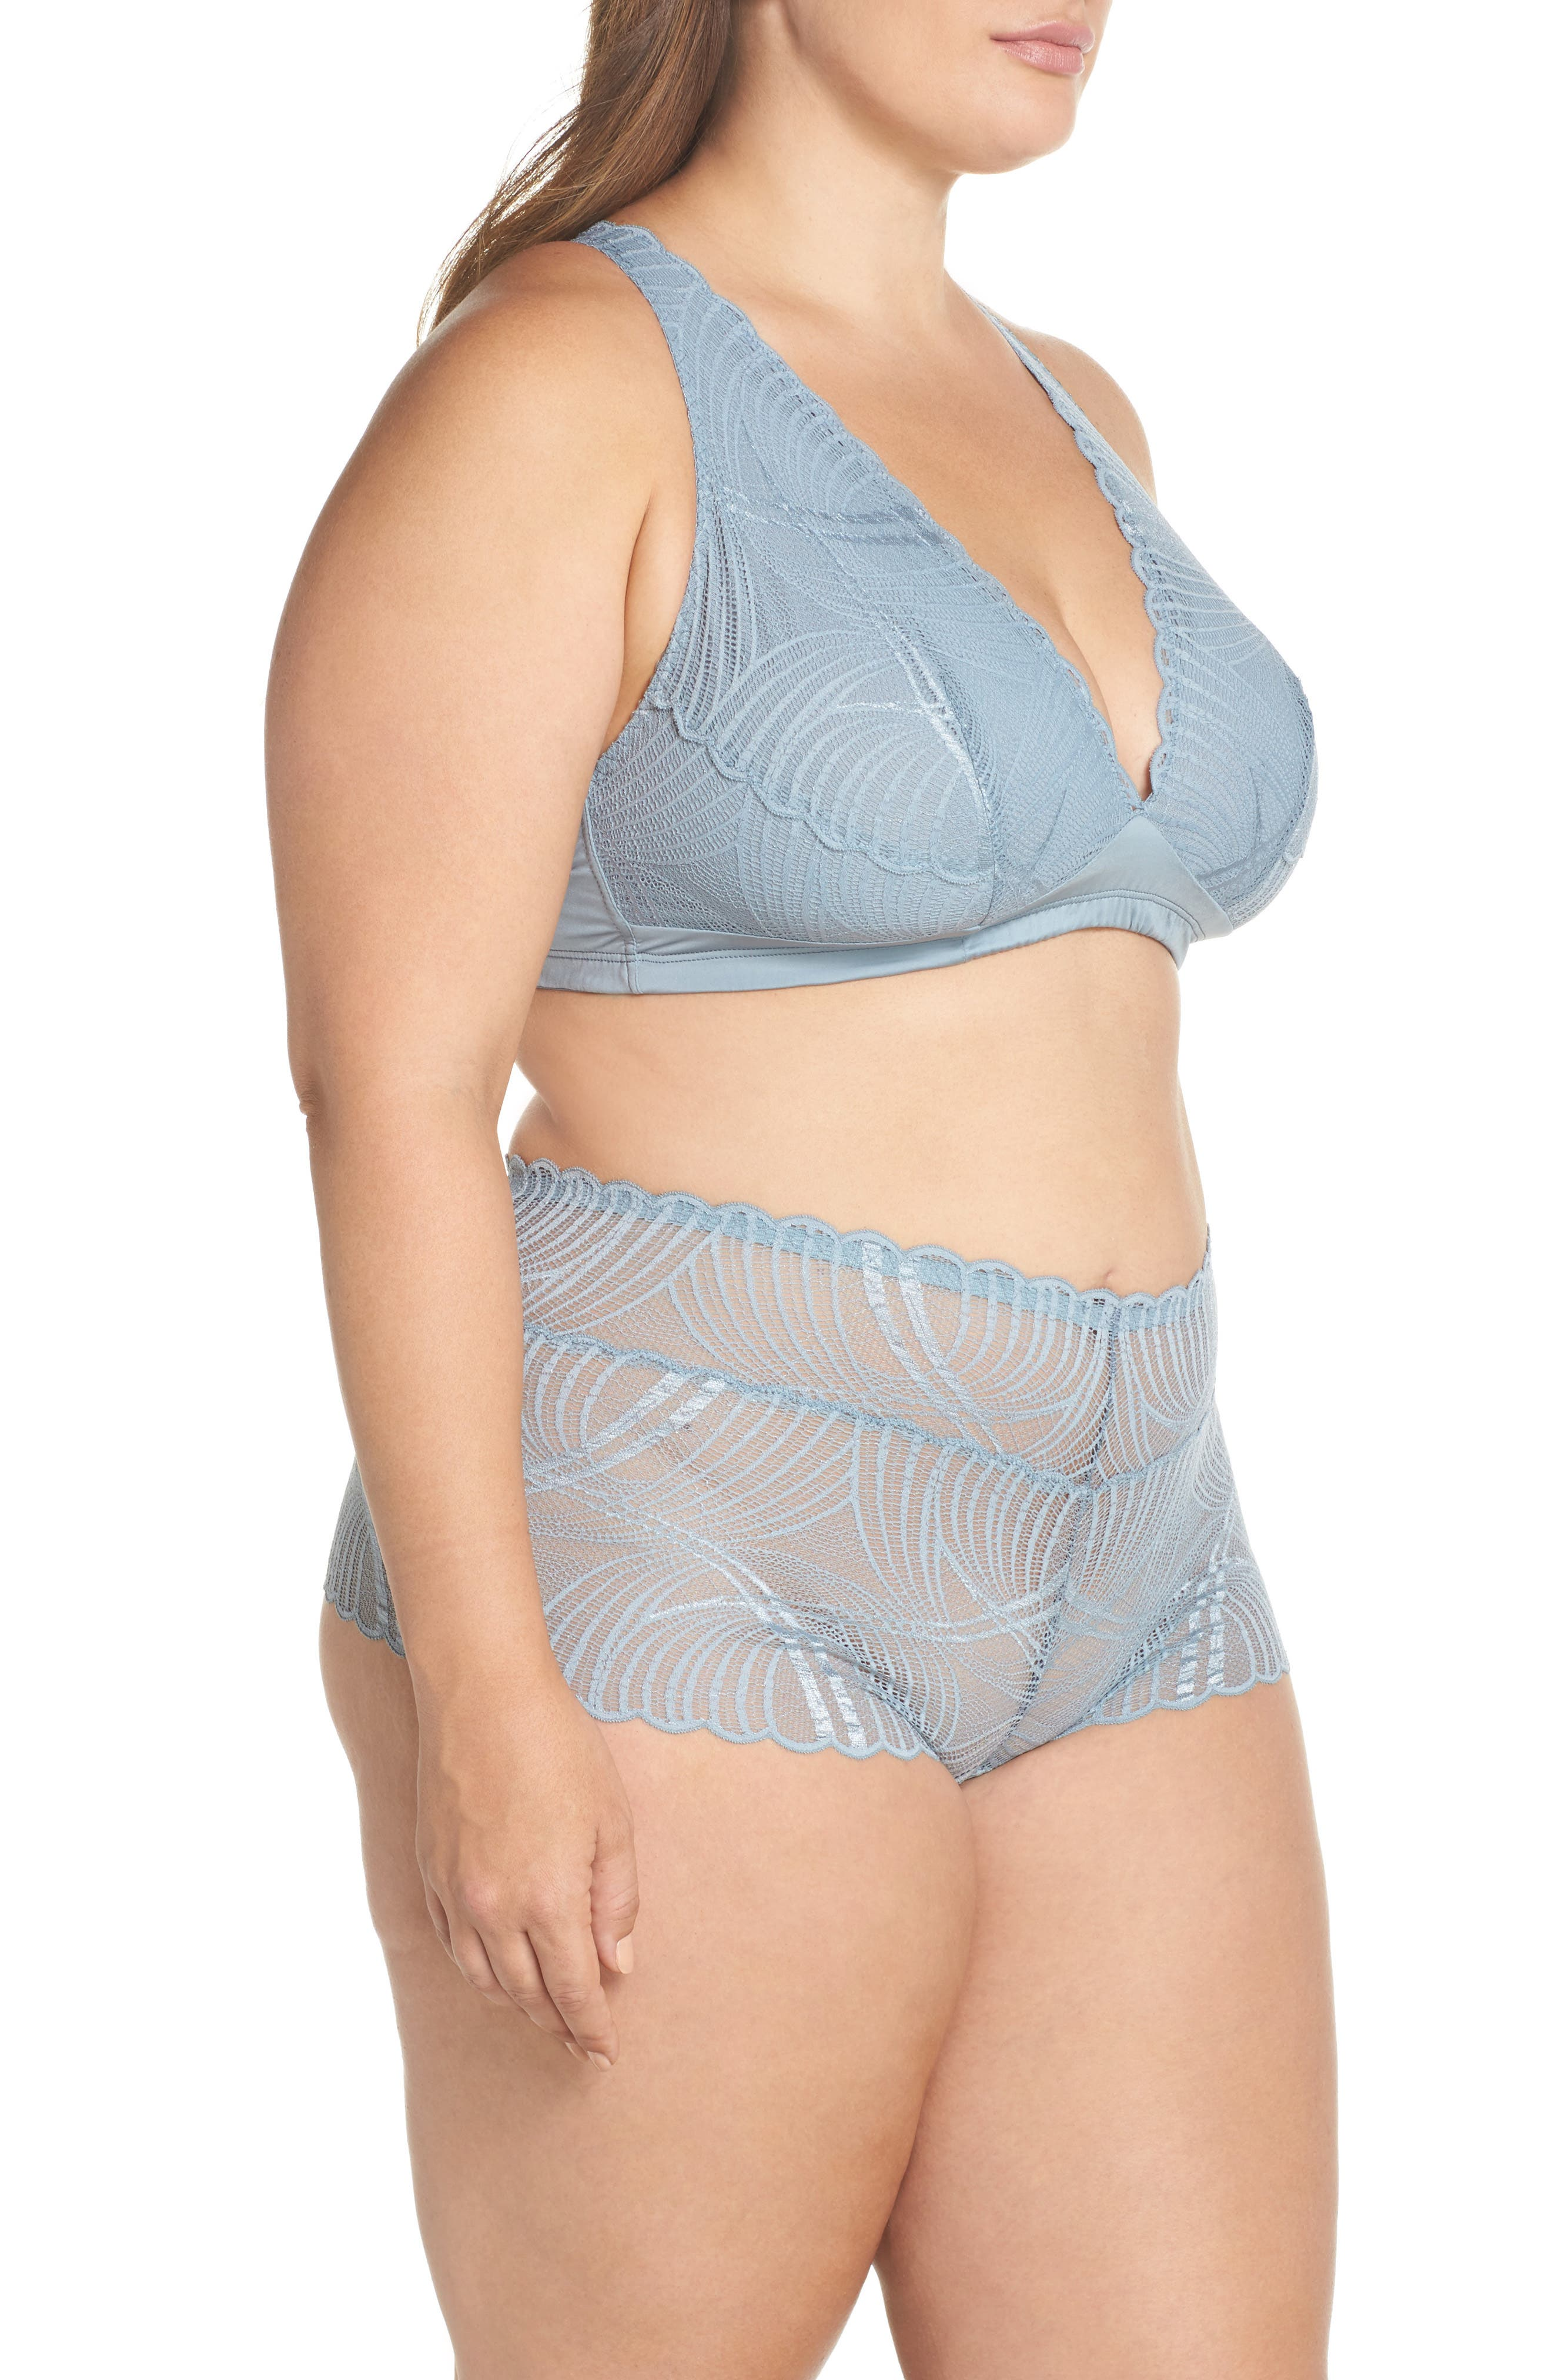 Minoa Naughtie Open Gusset Boyshorts,                             Alternate thumbnail 25, color,